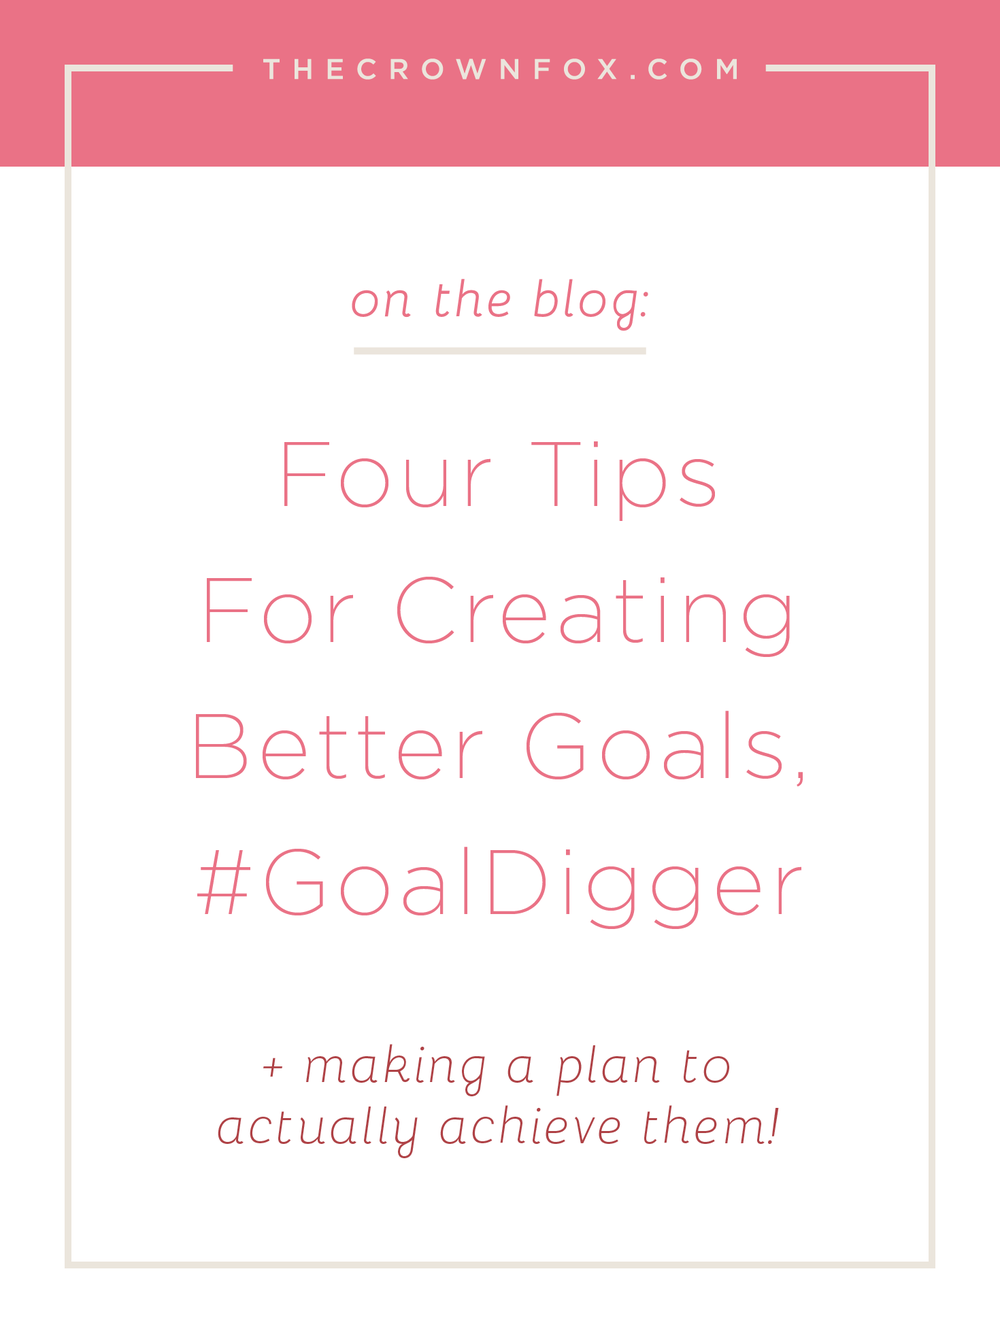 #goaldigger and #goalgetters this is for you: Making goals and an attack plan to accomplish them is hugely beneficial in your online business. Here are four tips that create goals with intent and with power to grow your business. | The Crown Fox | www.TheCrownFox.com | Brand Design + Strategy | Goals